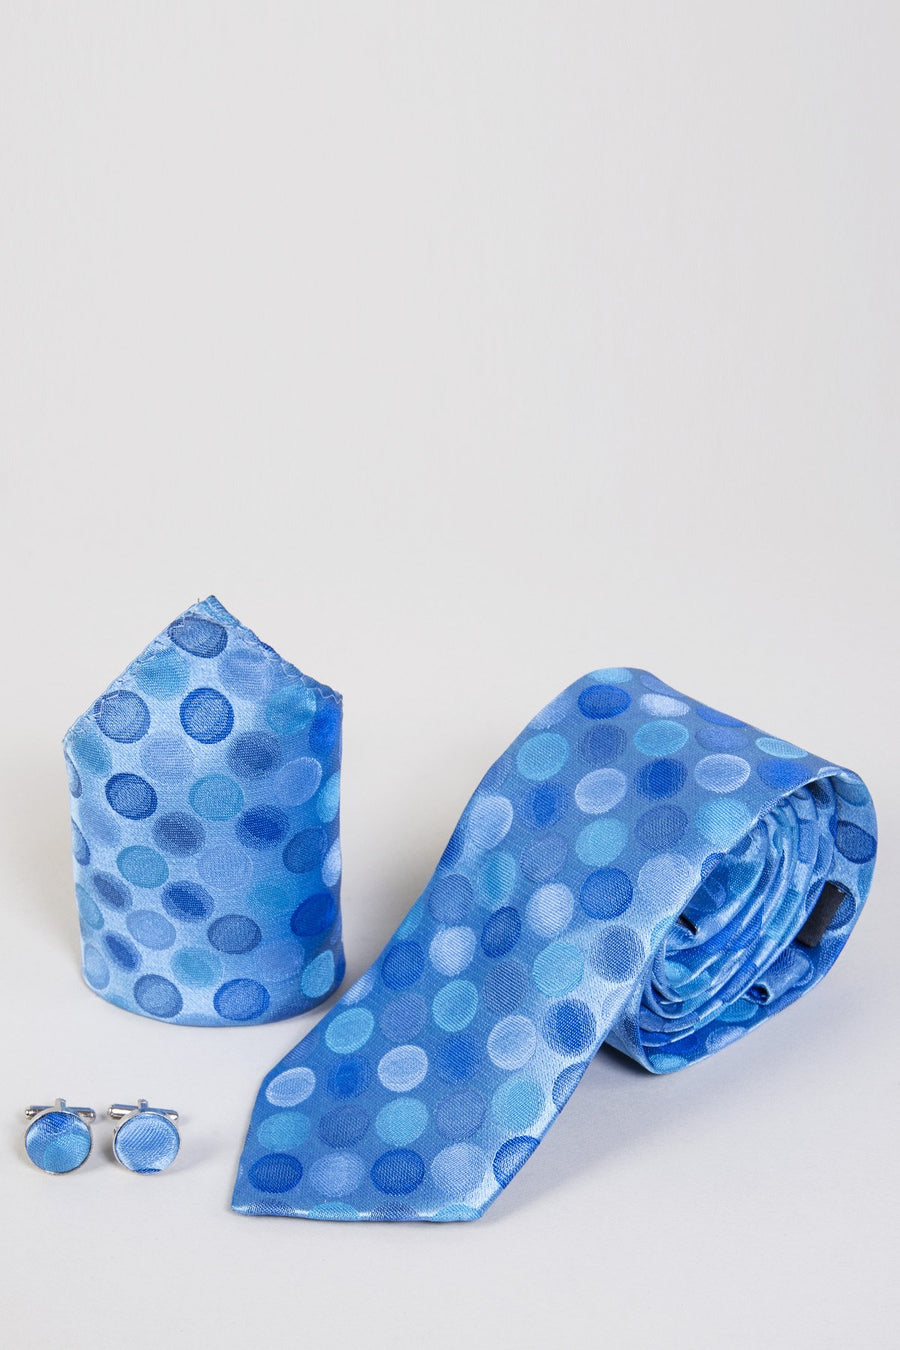 TB1 Blue Circle Print Tie, Cufflink & Pocket Square - Wedding Suit Direct